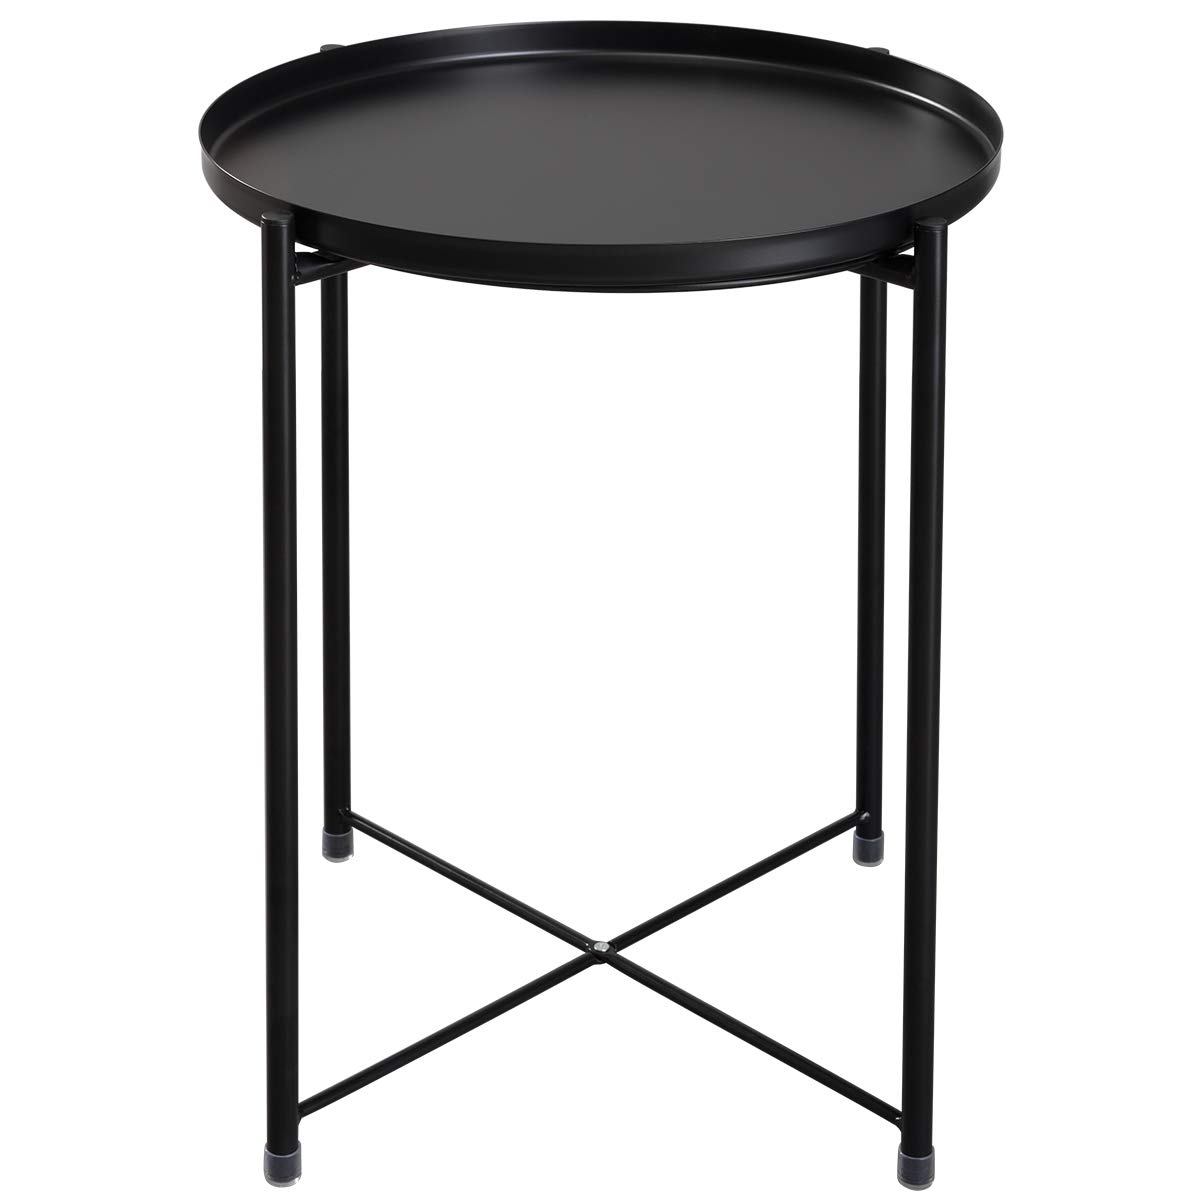 HollyHOME Tray Metal End Table, Sofa Table Small Round Side Tables, Anti-Rust and Waterproof Outdoor & Indoor Snack Table, Accent Coffee Table,(H) 20.28'' x(D) 16.38'', Black by HollyHOME